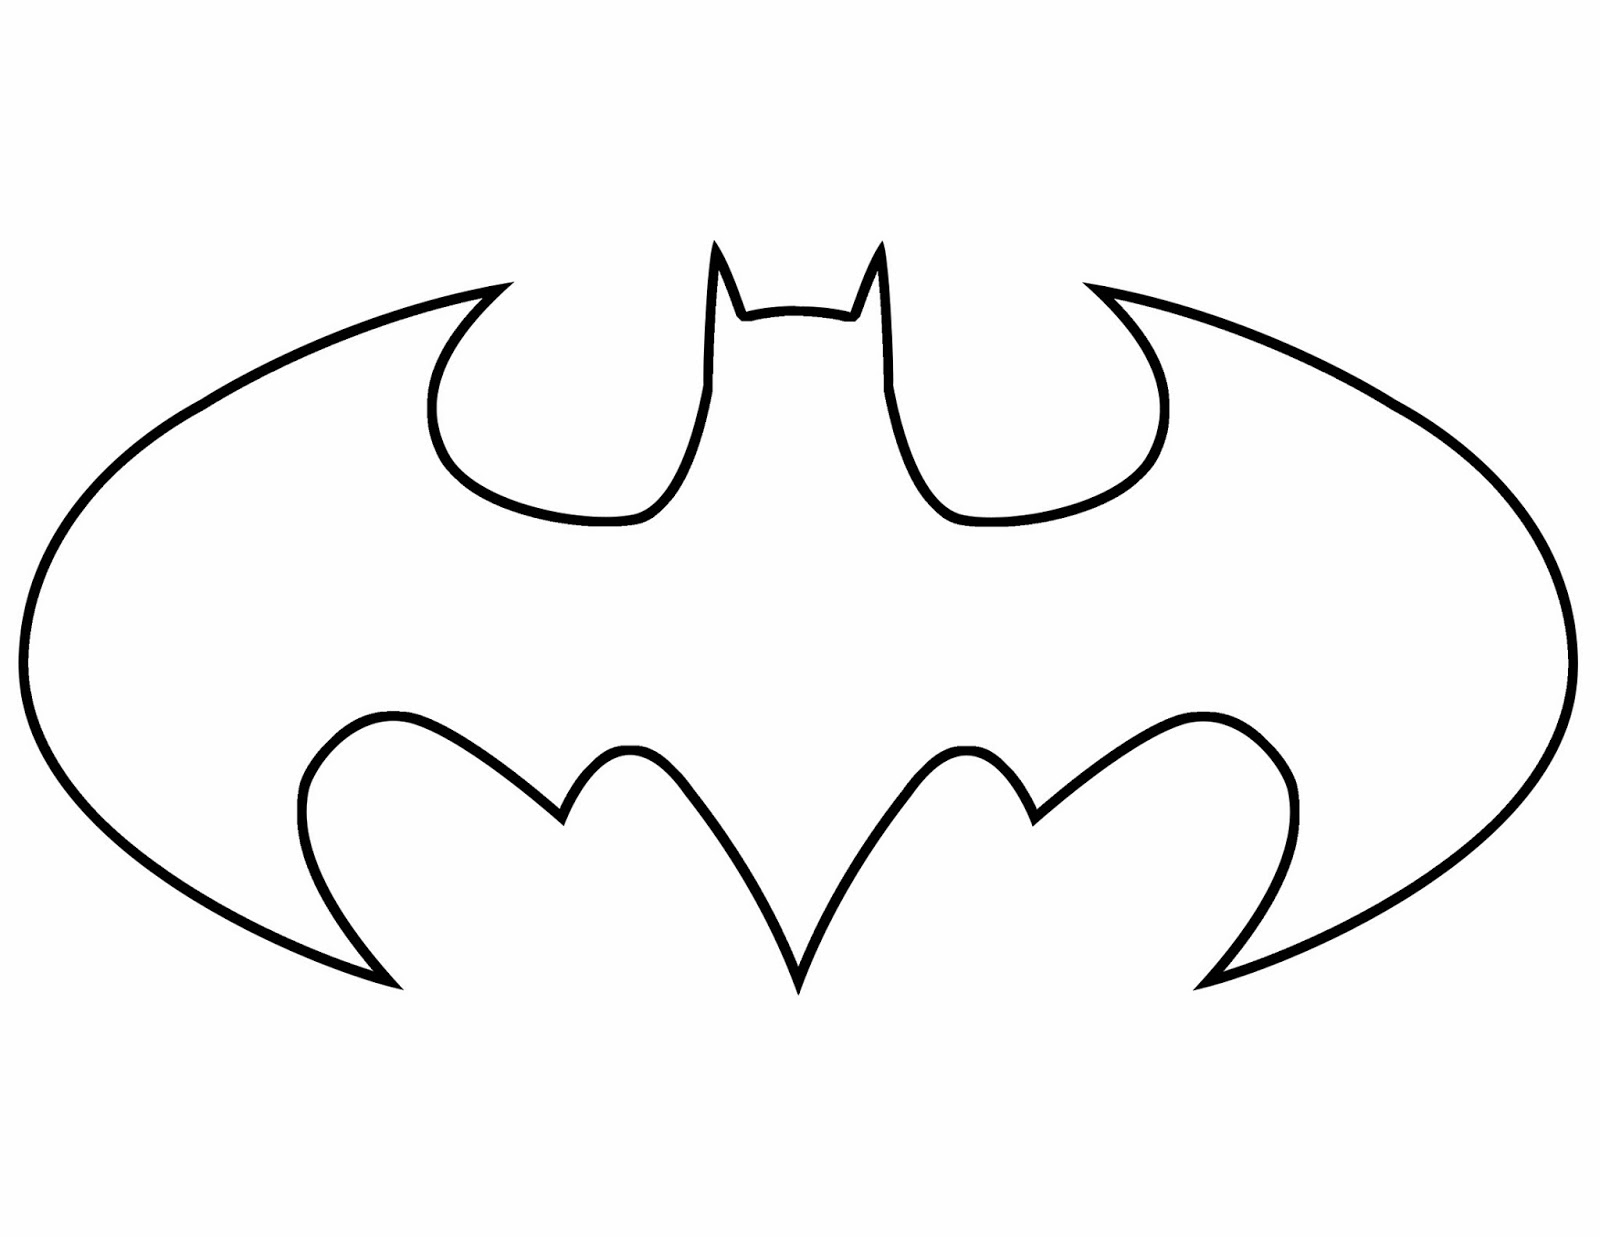 Superhero Logos Coloring Pages Images amp Pictures Becuo